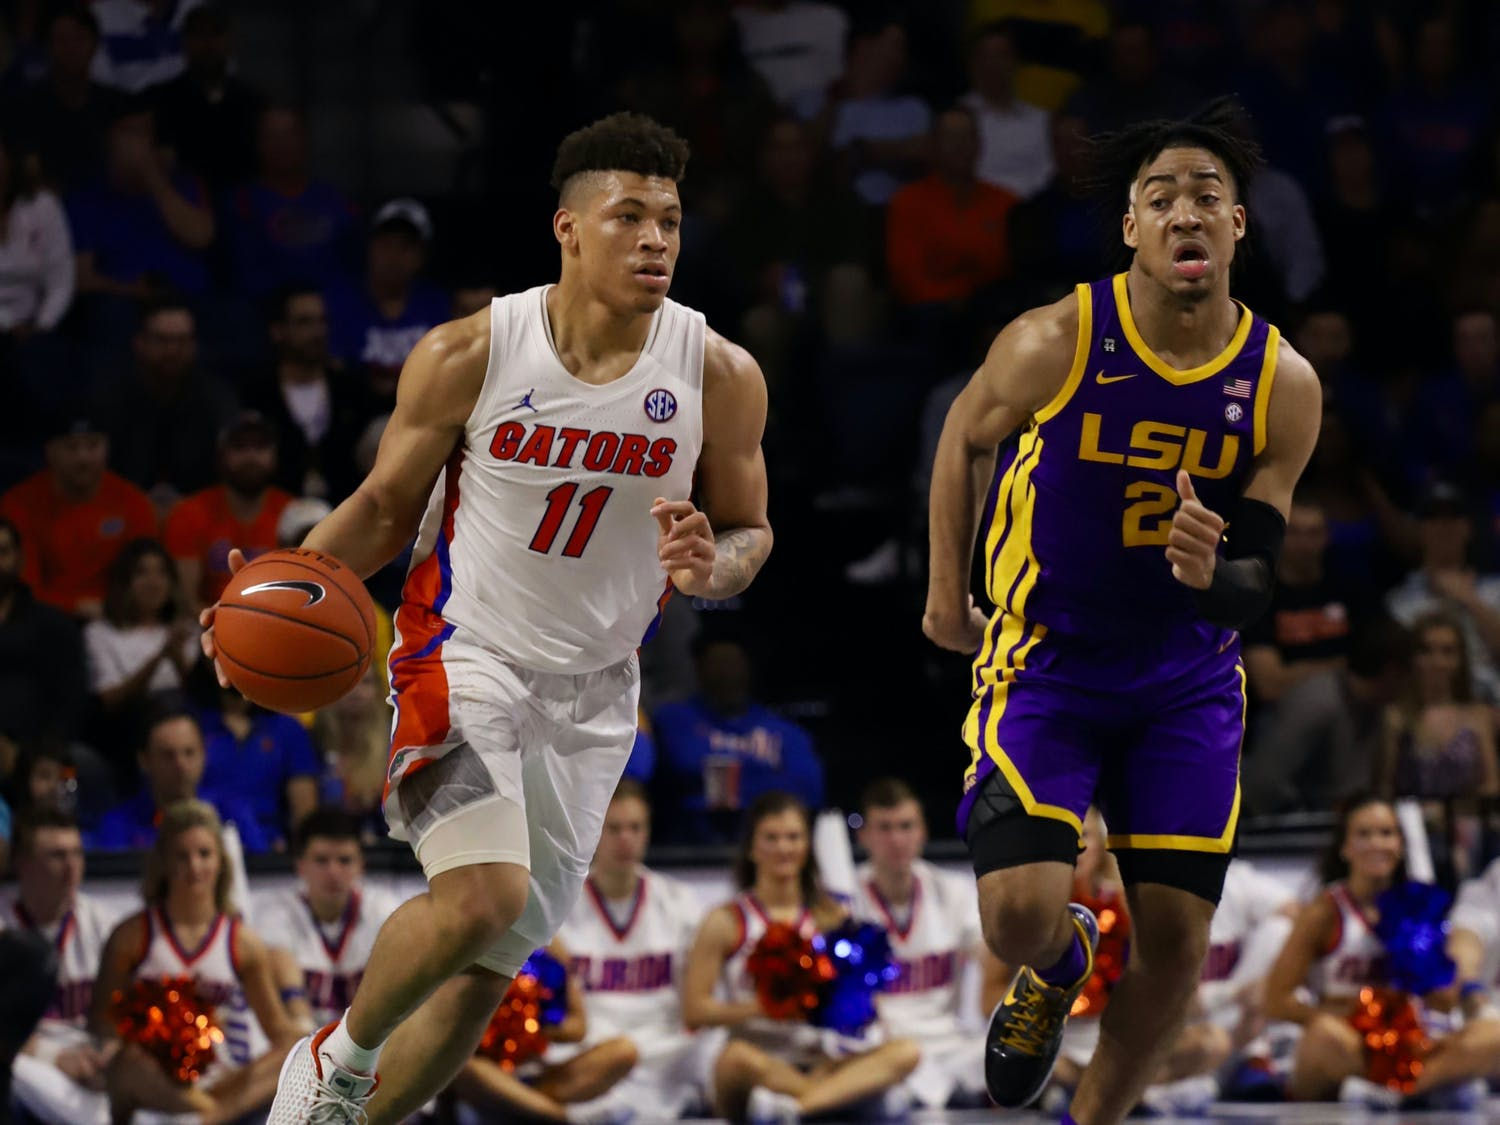 """Gators forward Keyontae Johnson at Florida's game against LSU Feb. 26. Johnson is in """"critical but stable"""" condition at Tallahassee Memorial Hospital."""